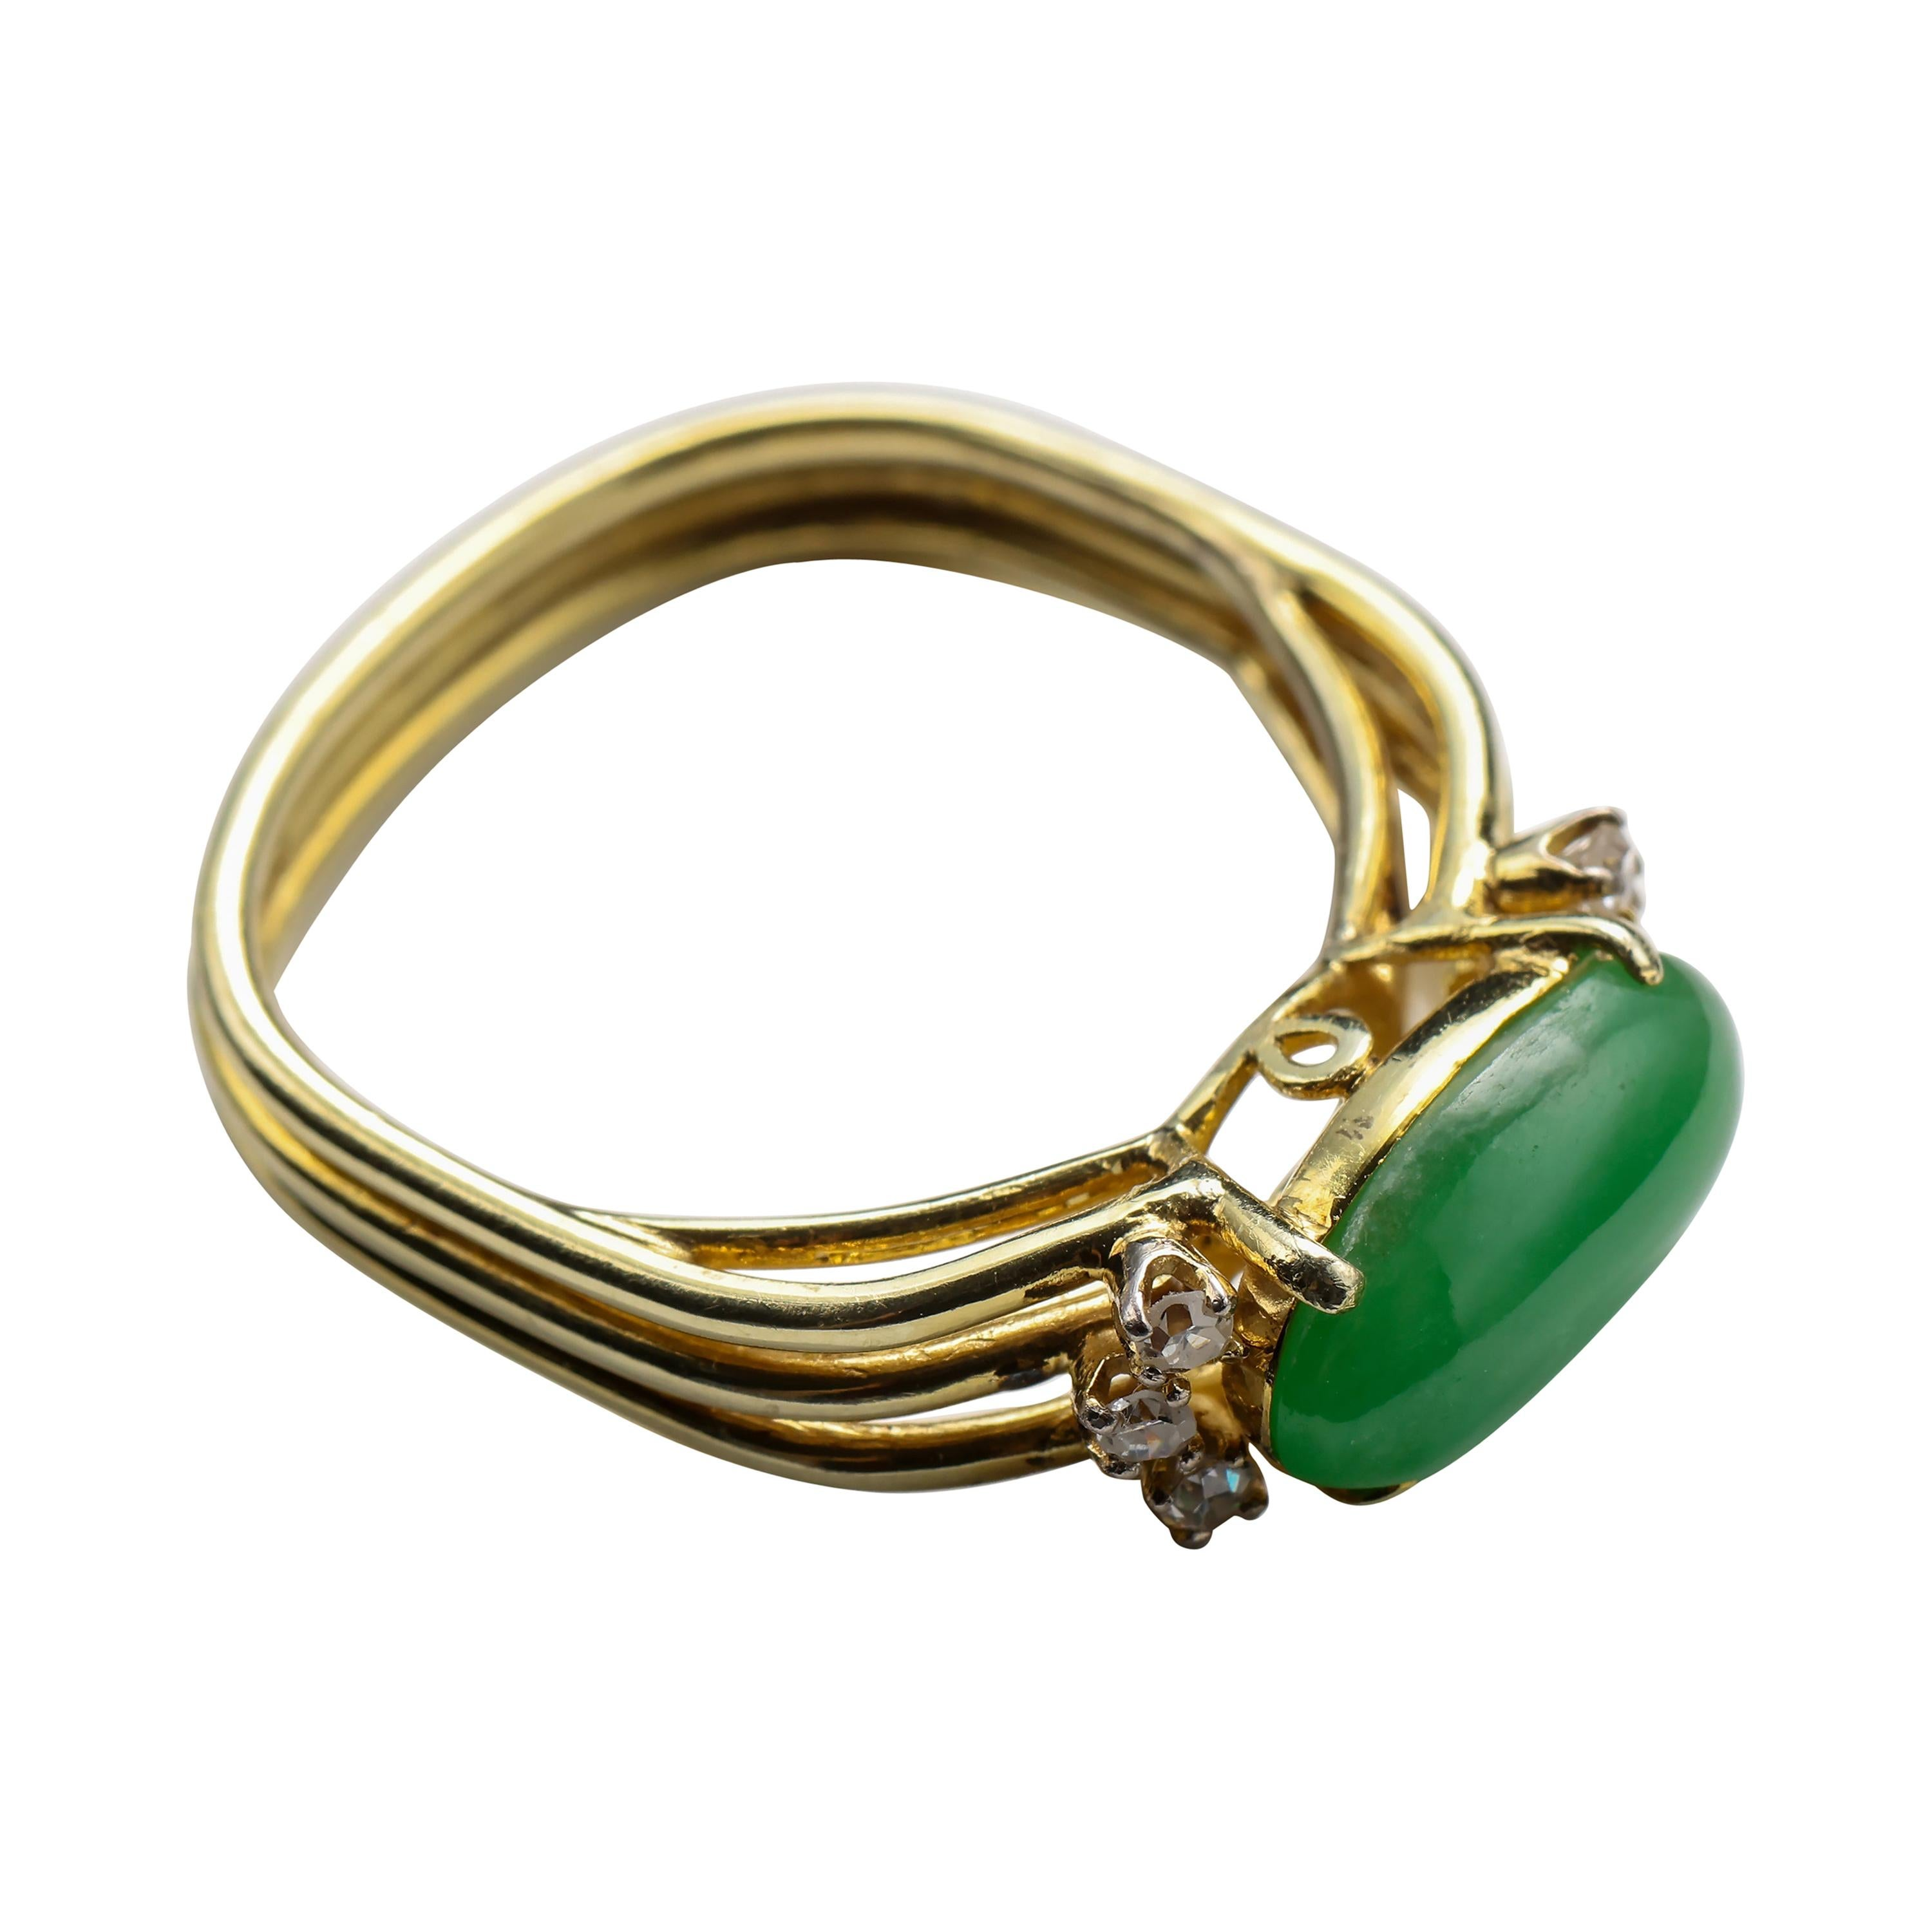 Jade Ring with Diamonds Certified Untreated, Circa 1950s